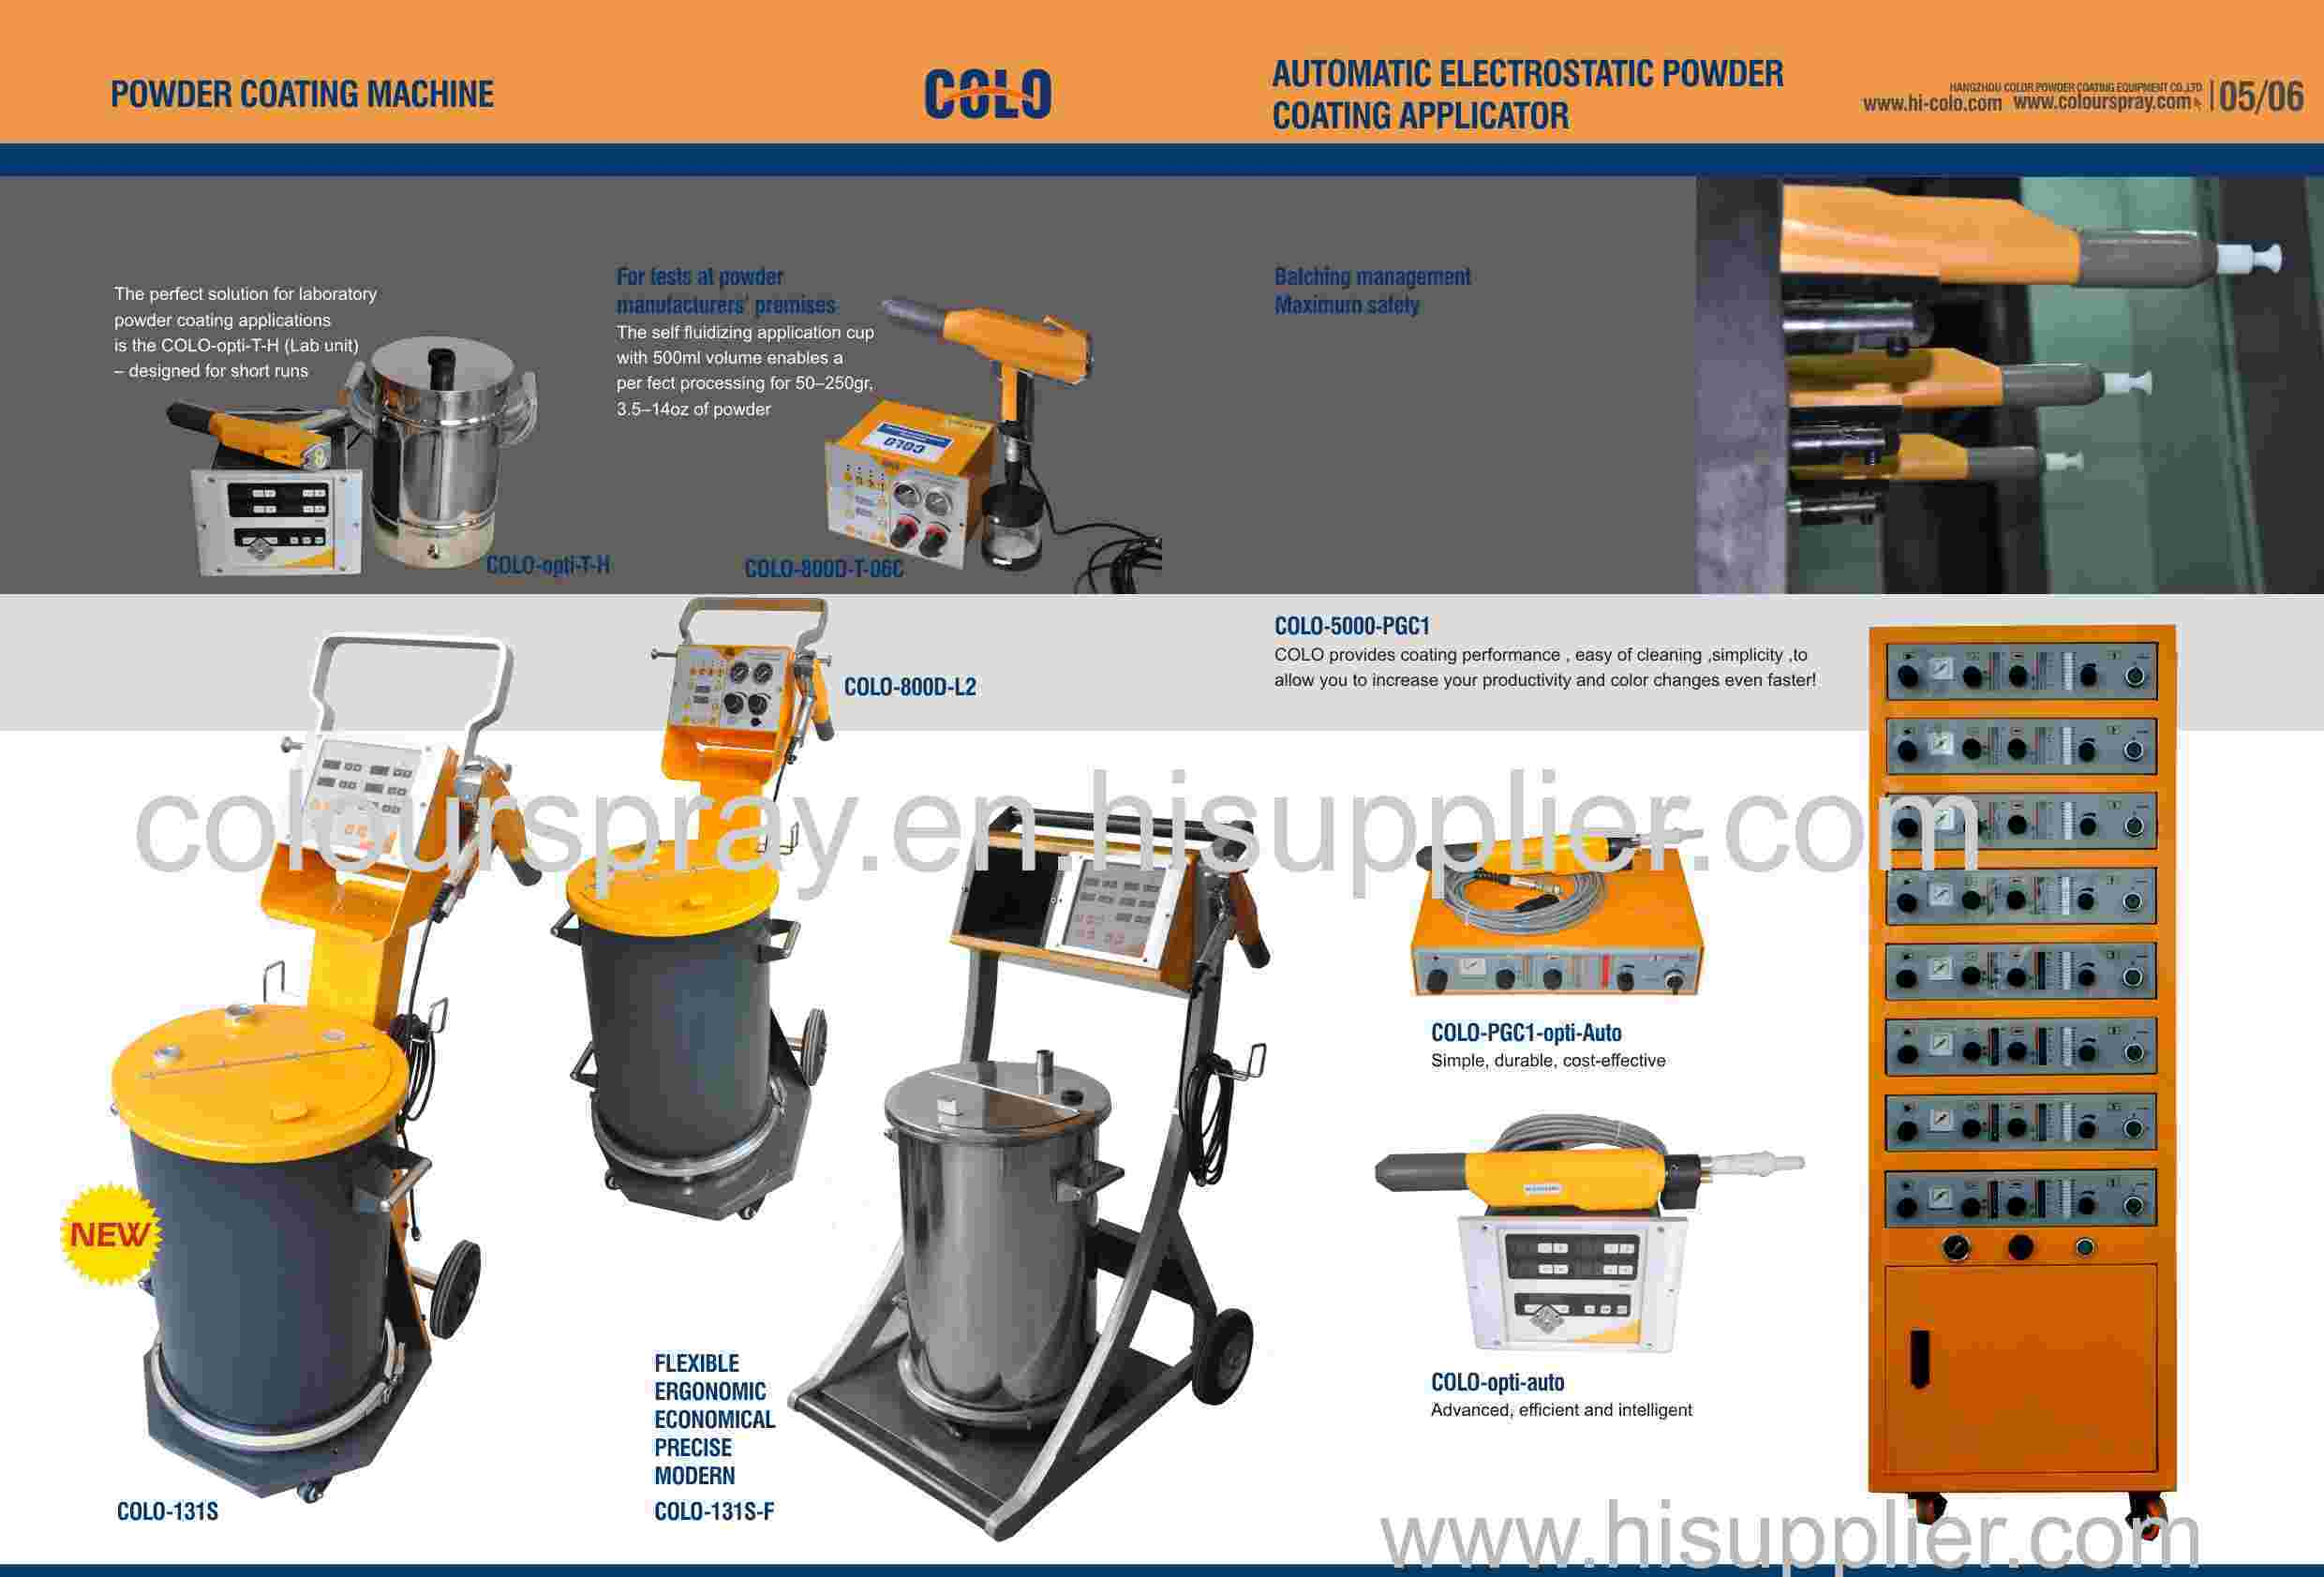 colo-131s powder coating system